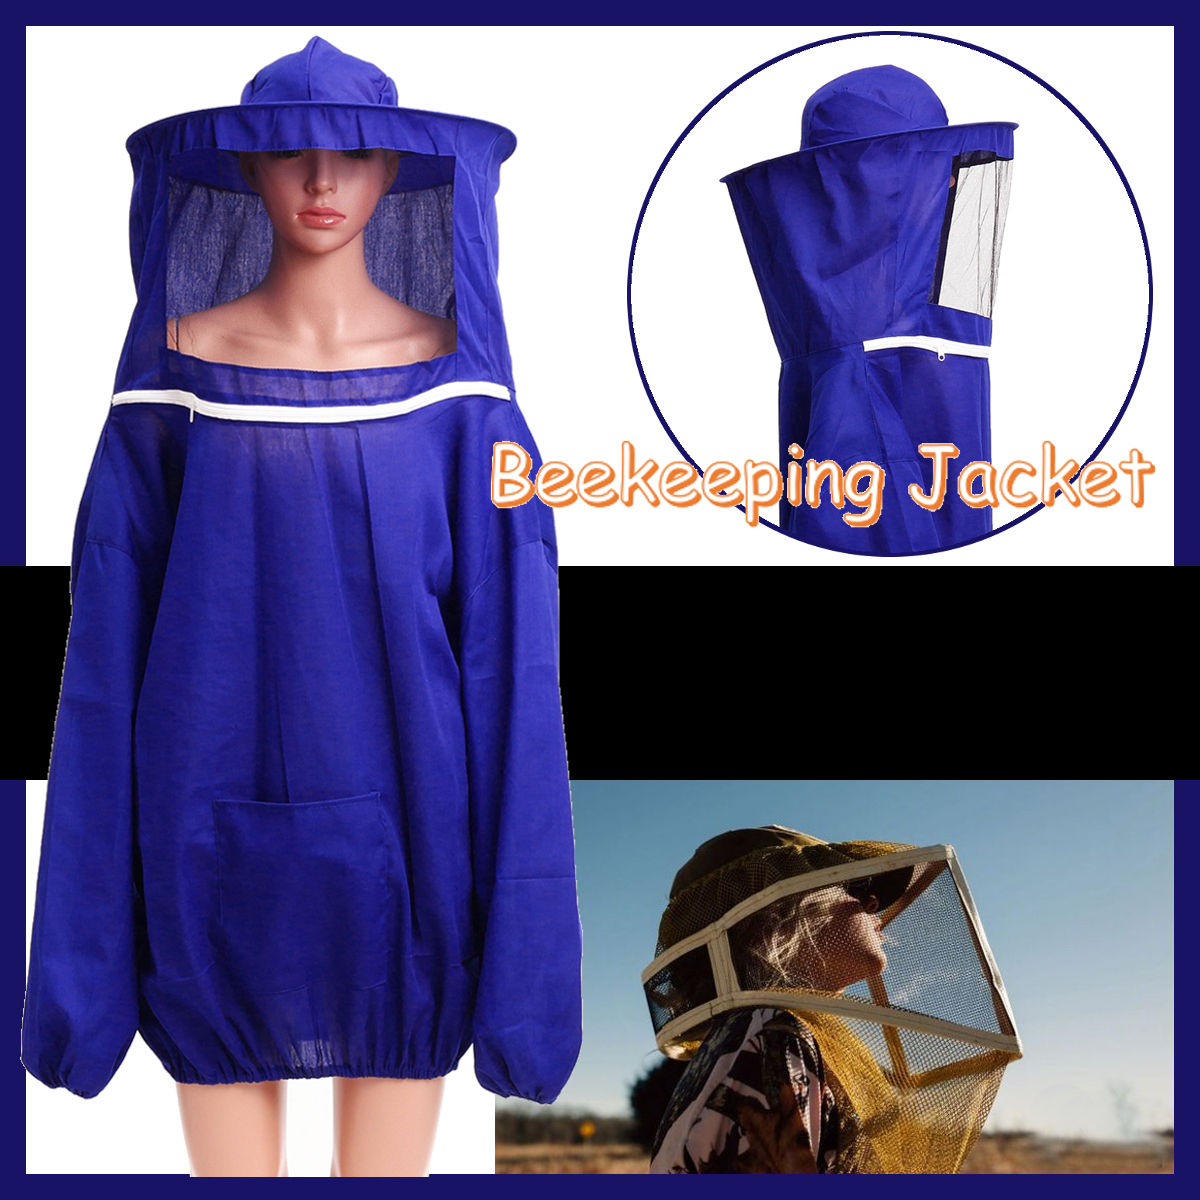 Beekeeping Jacket Veil Beekeeping Tools Set Suit Hat Veil Smock Protective Equipment